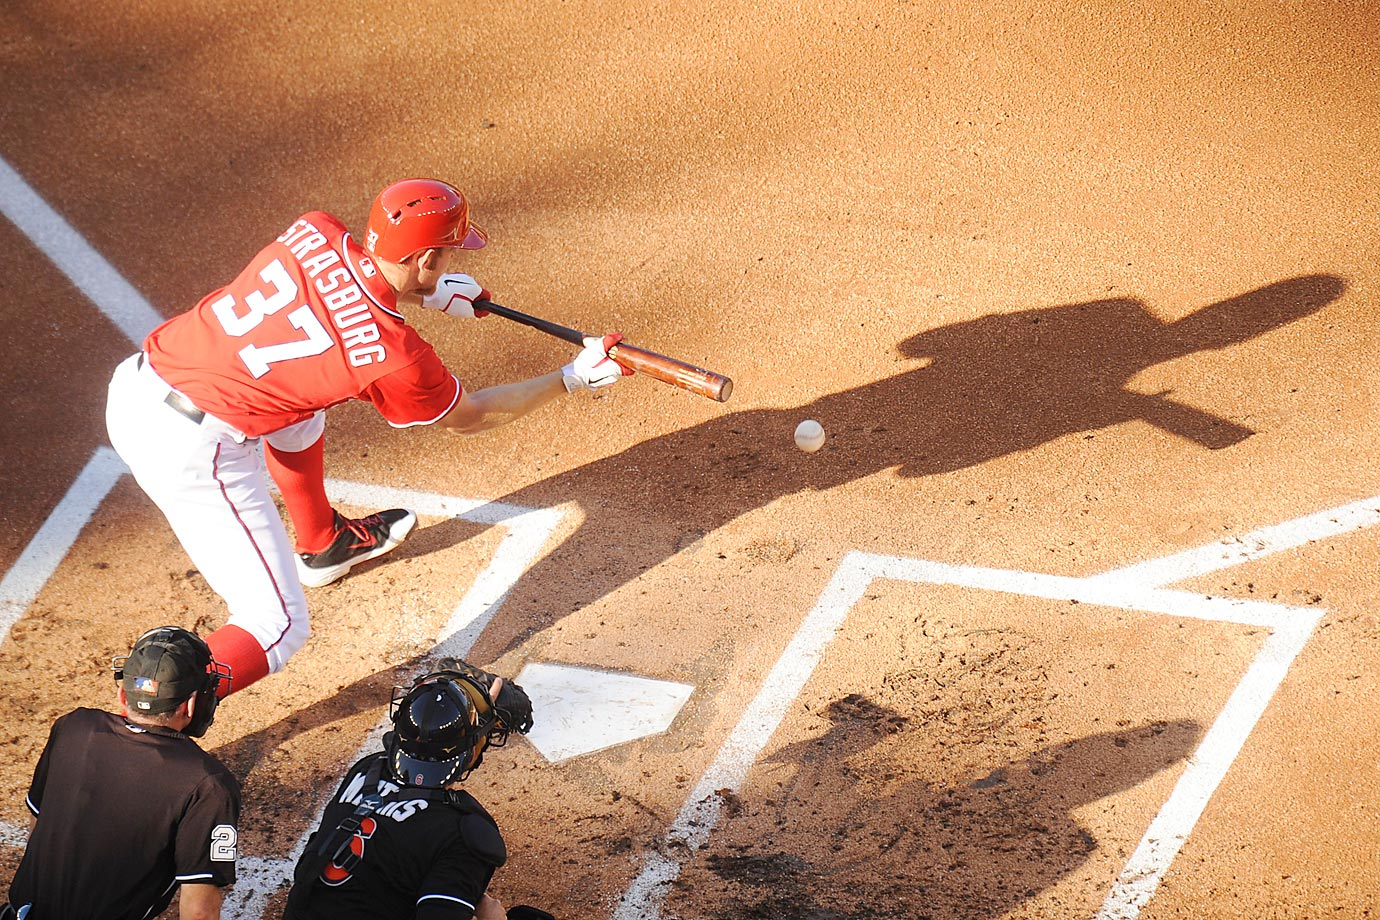 Stephen Strasburg of the Washington Nationals bunts to score Bryce Harper during a game against the Miami Marlins.